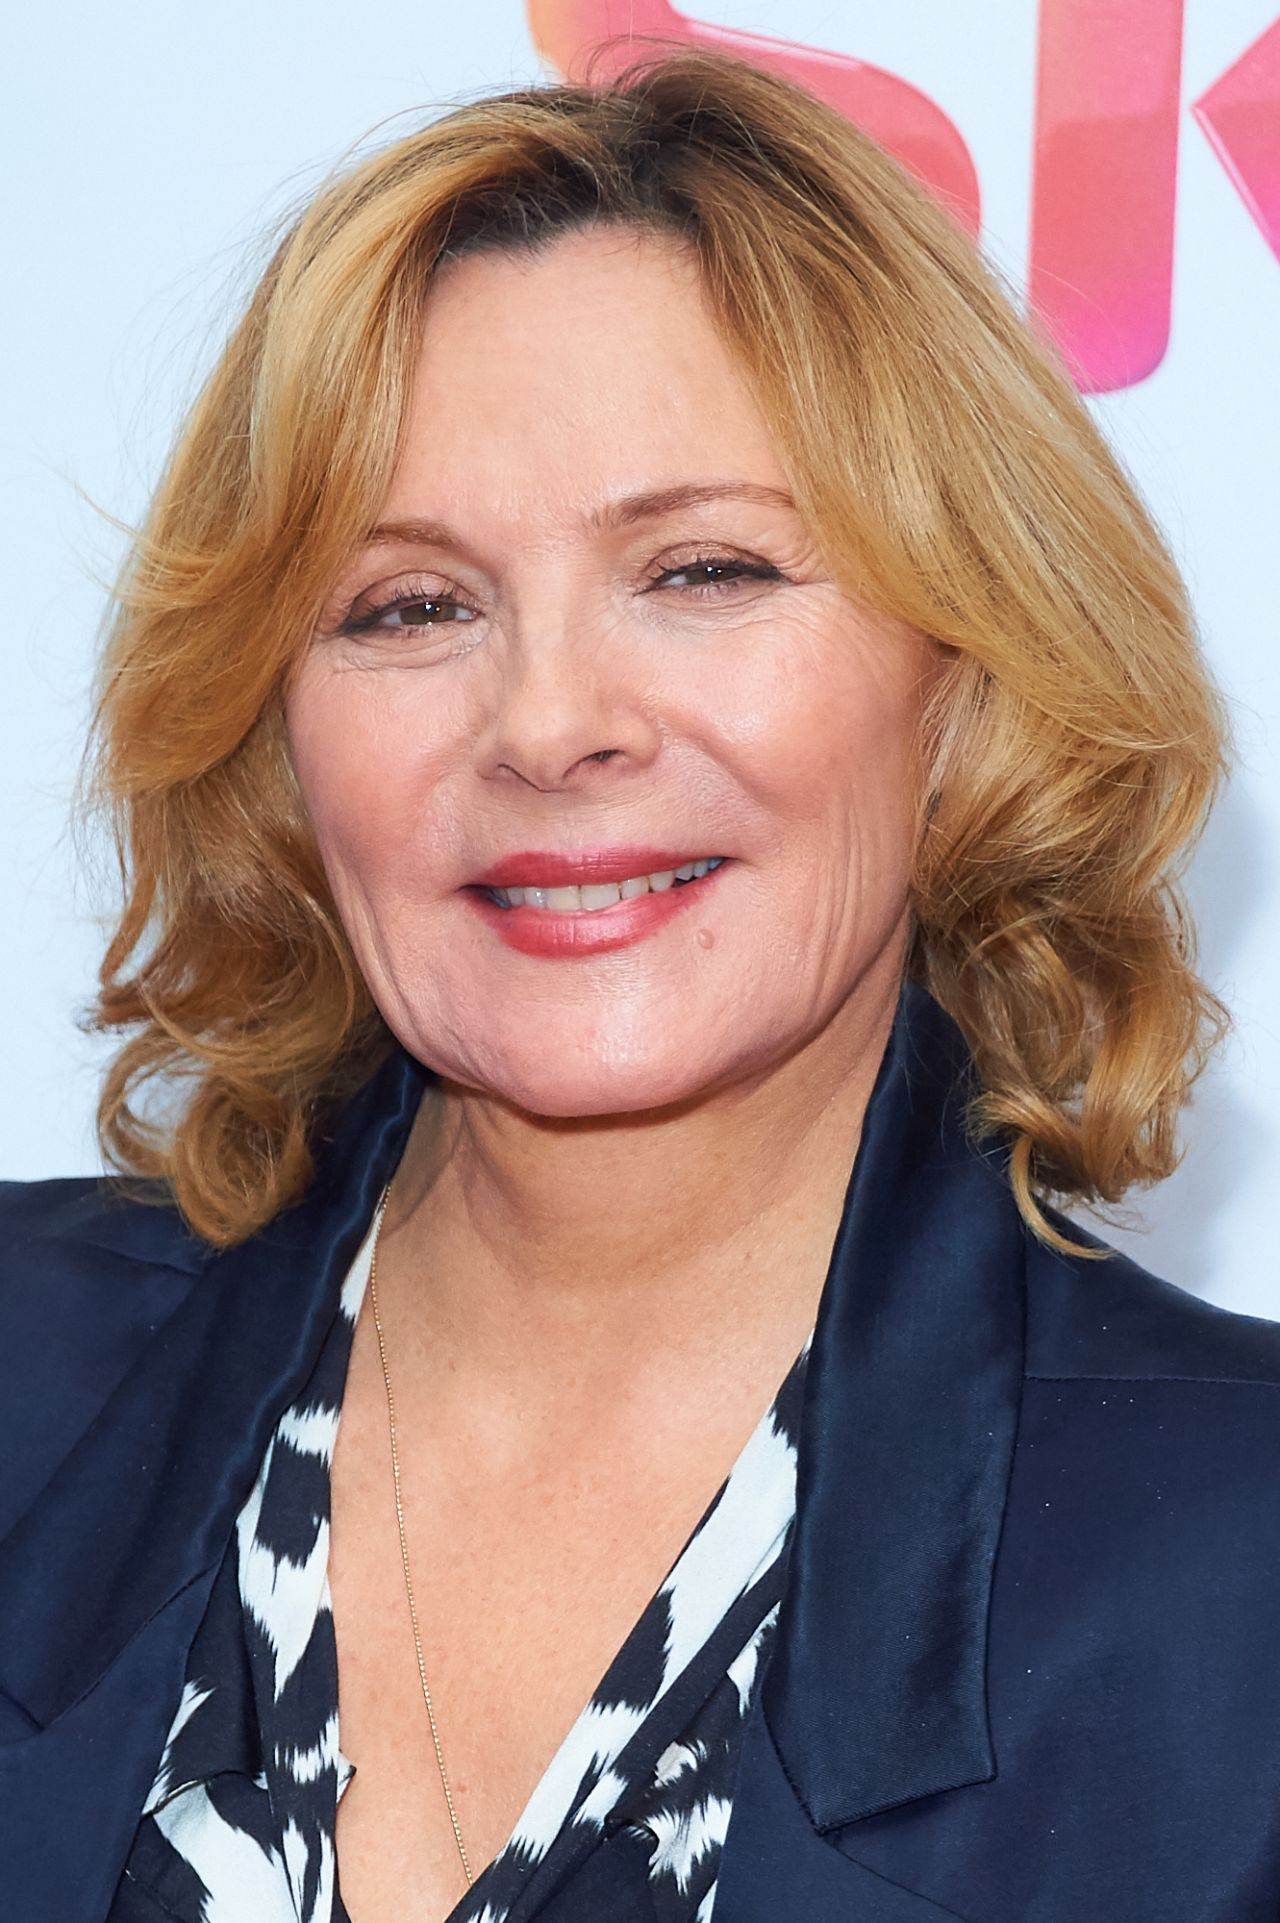 Kim Cattrall - Sky Women in Film and TV Awards 2017 in London Kim Cattrall